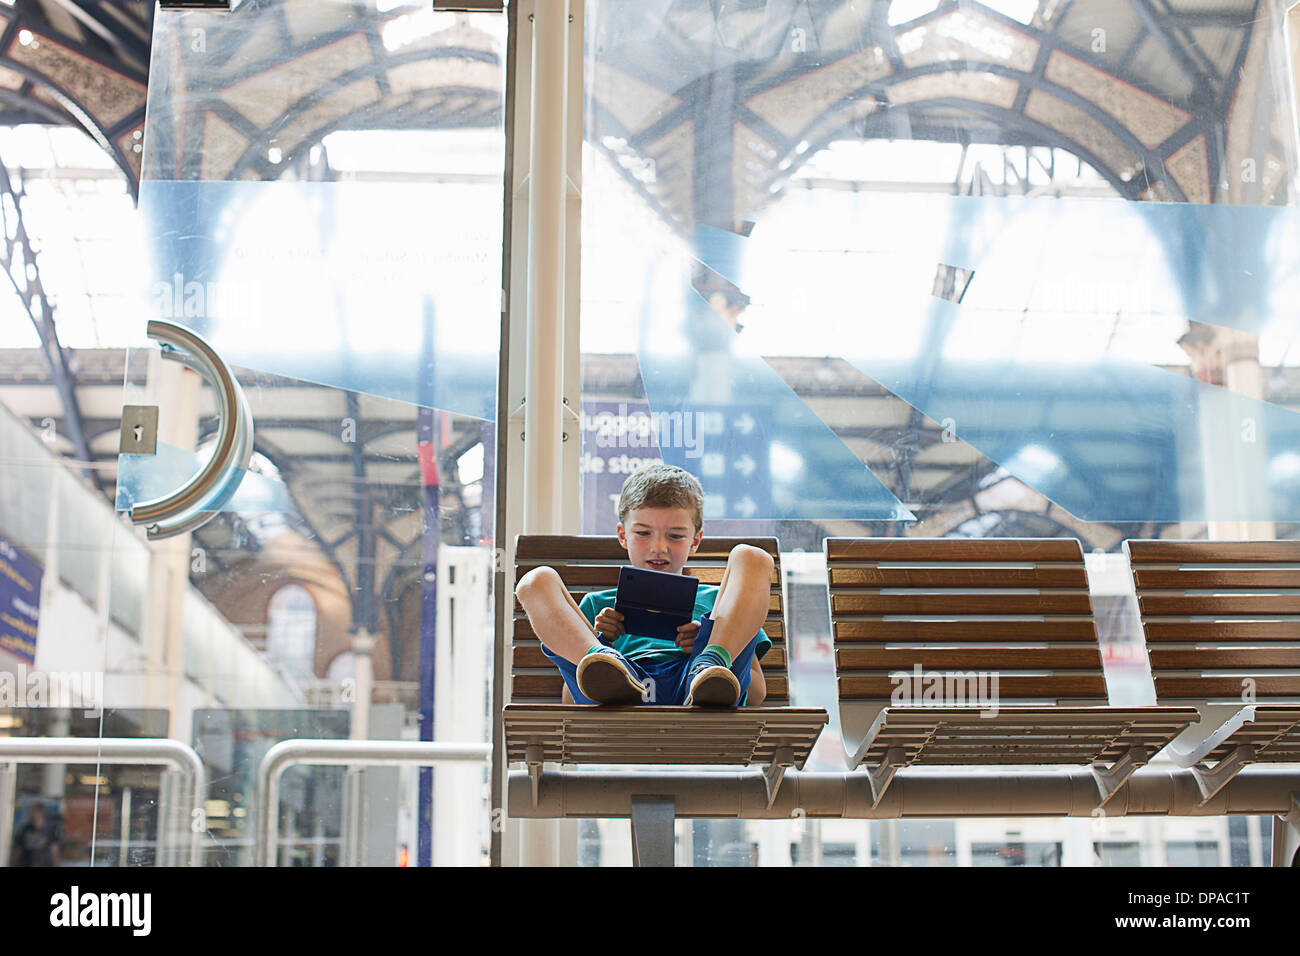 Young boy in train station waiting room playing handheld game - Stock Image